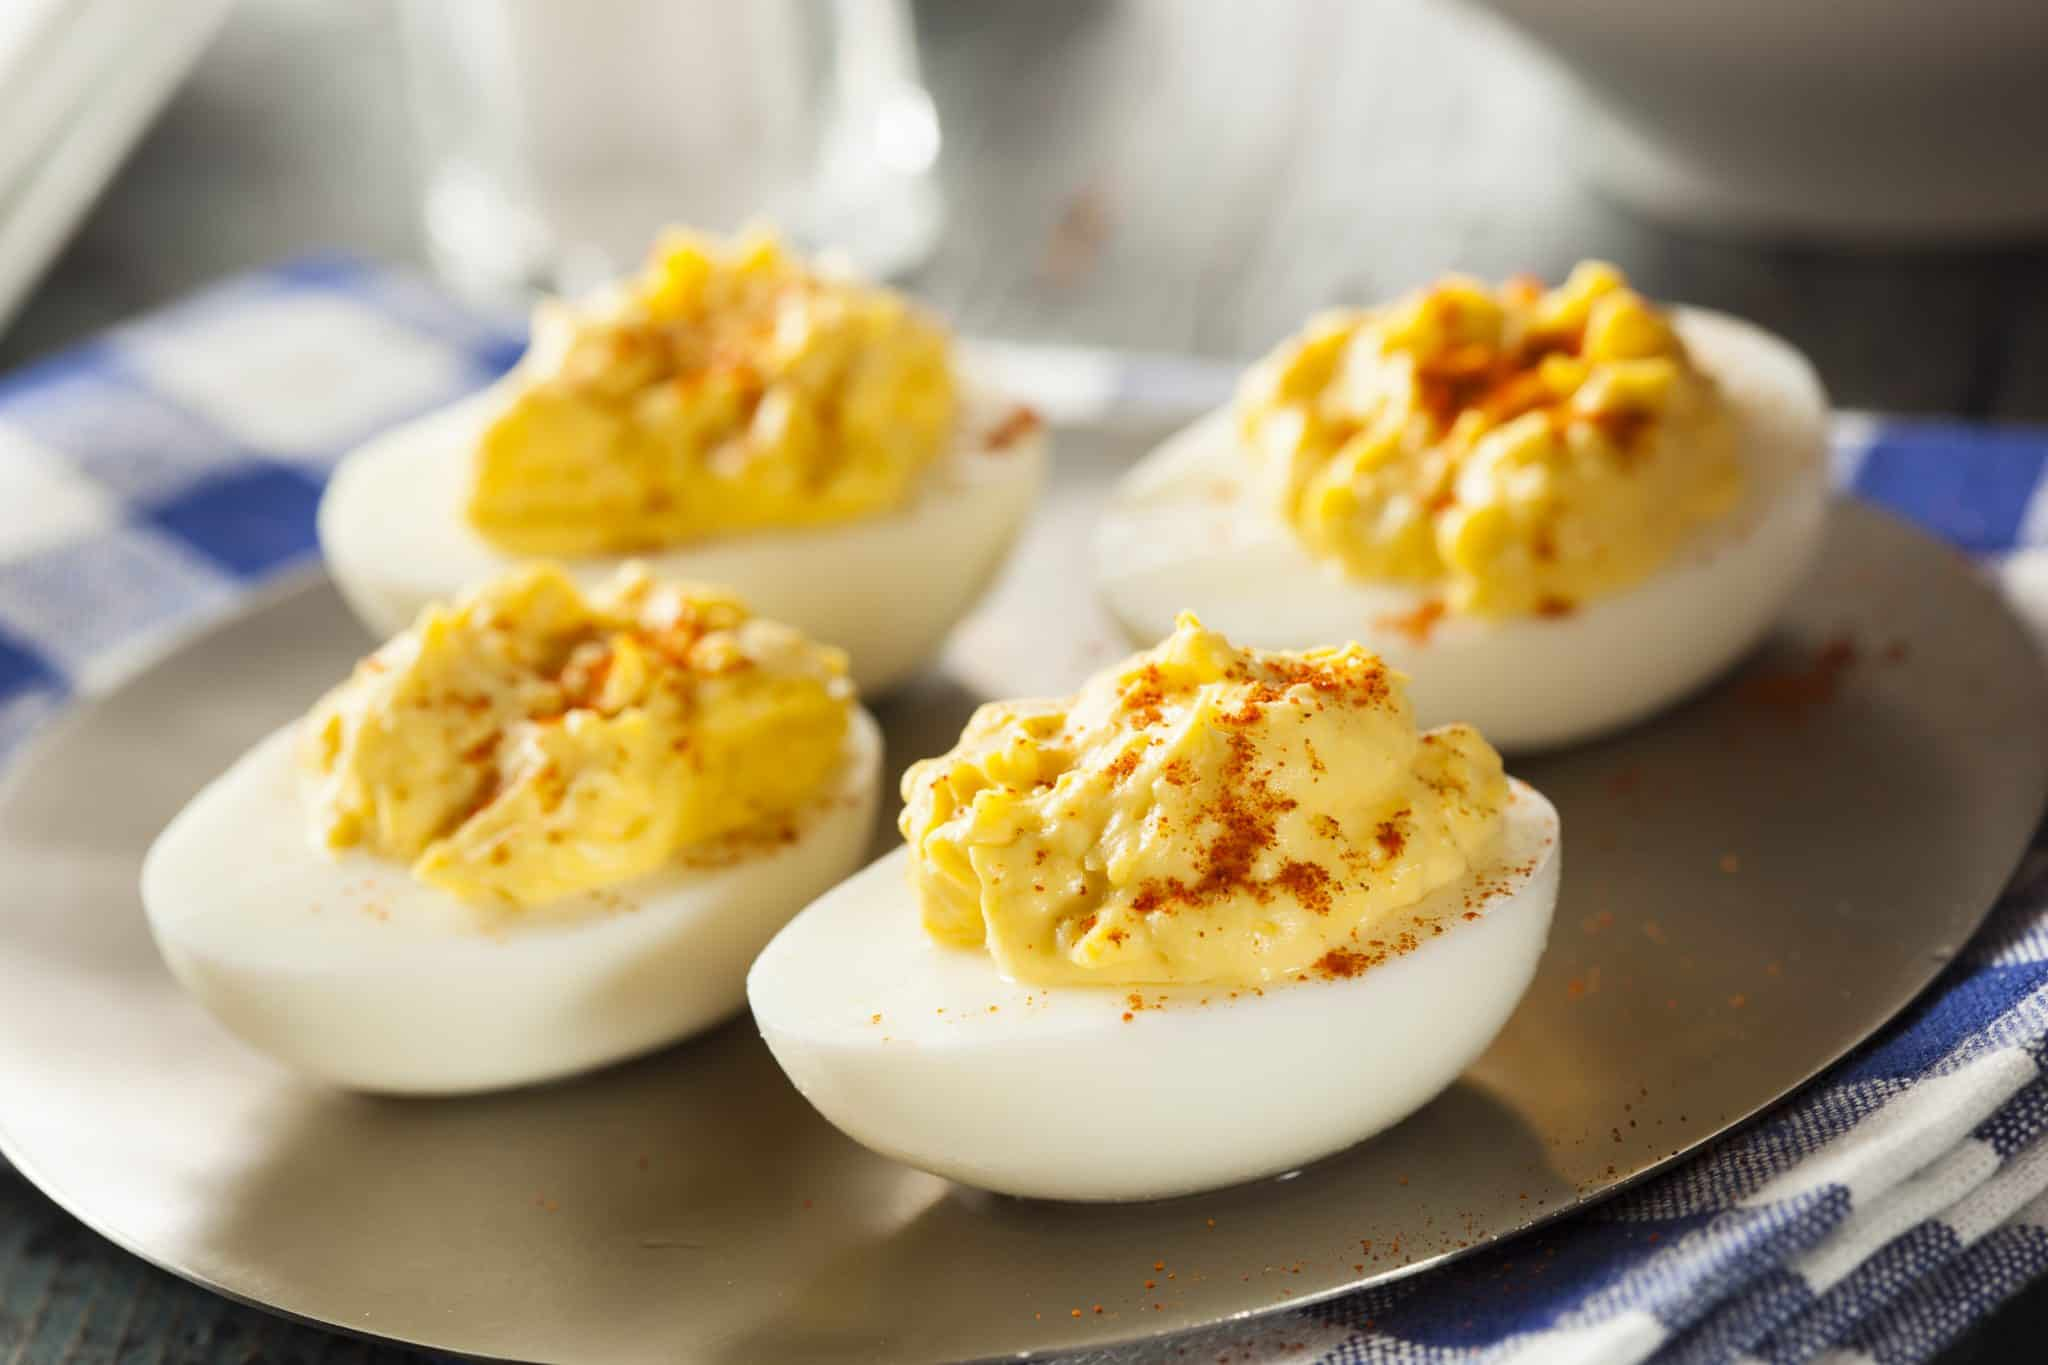 The BEST EVER Deviled Eggs - The Country Cook